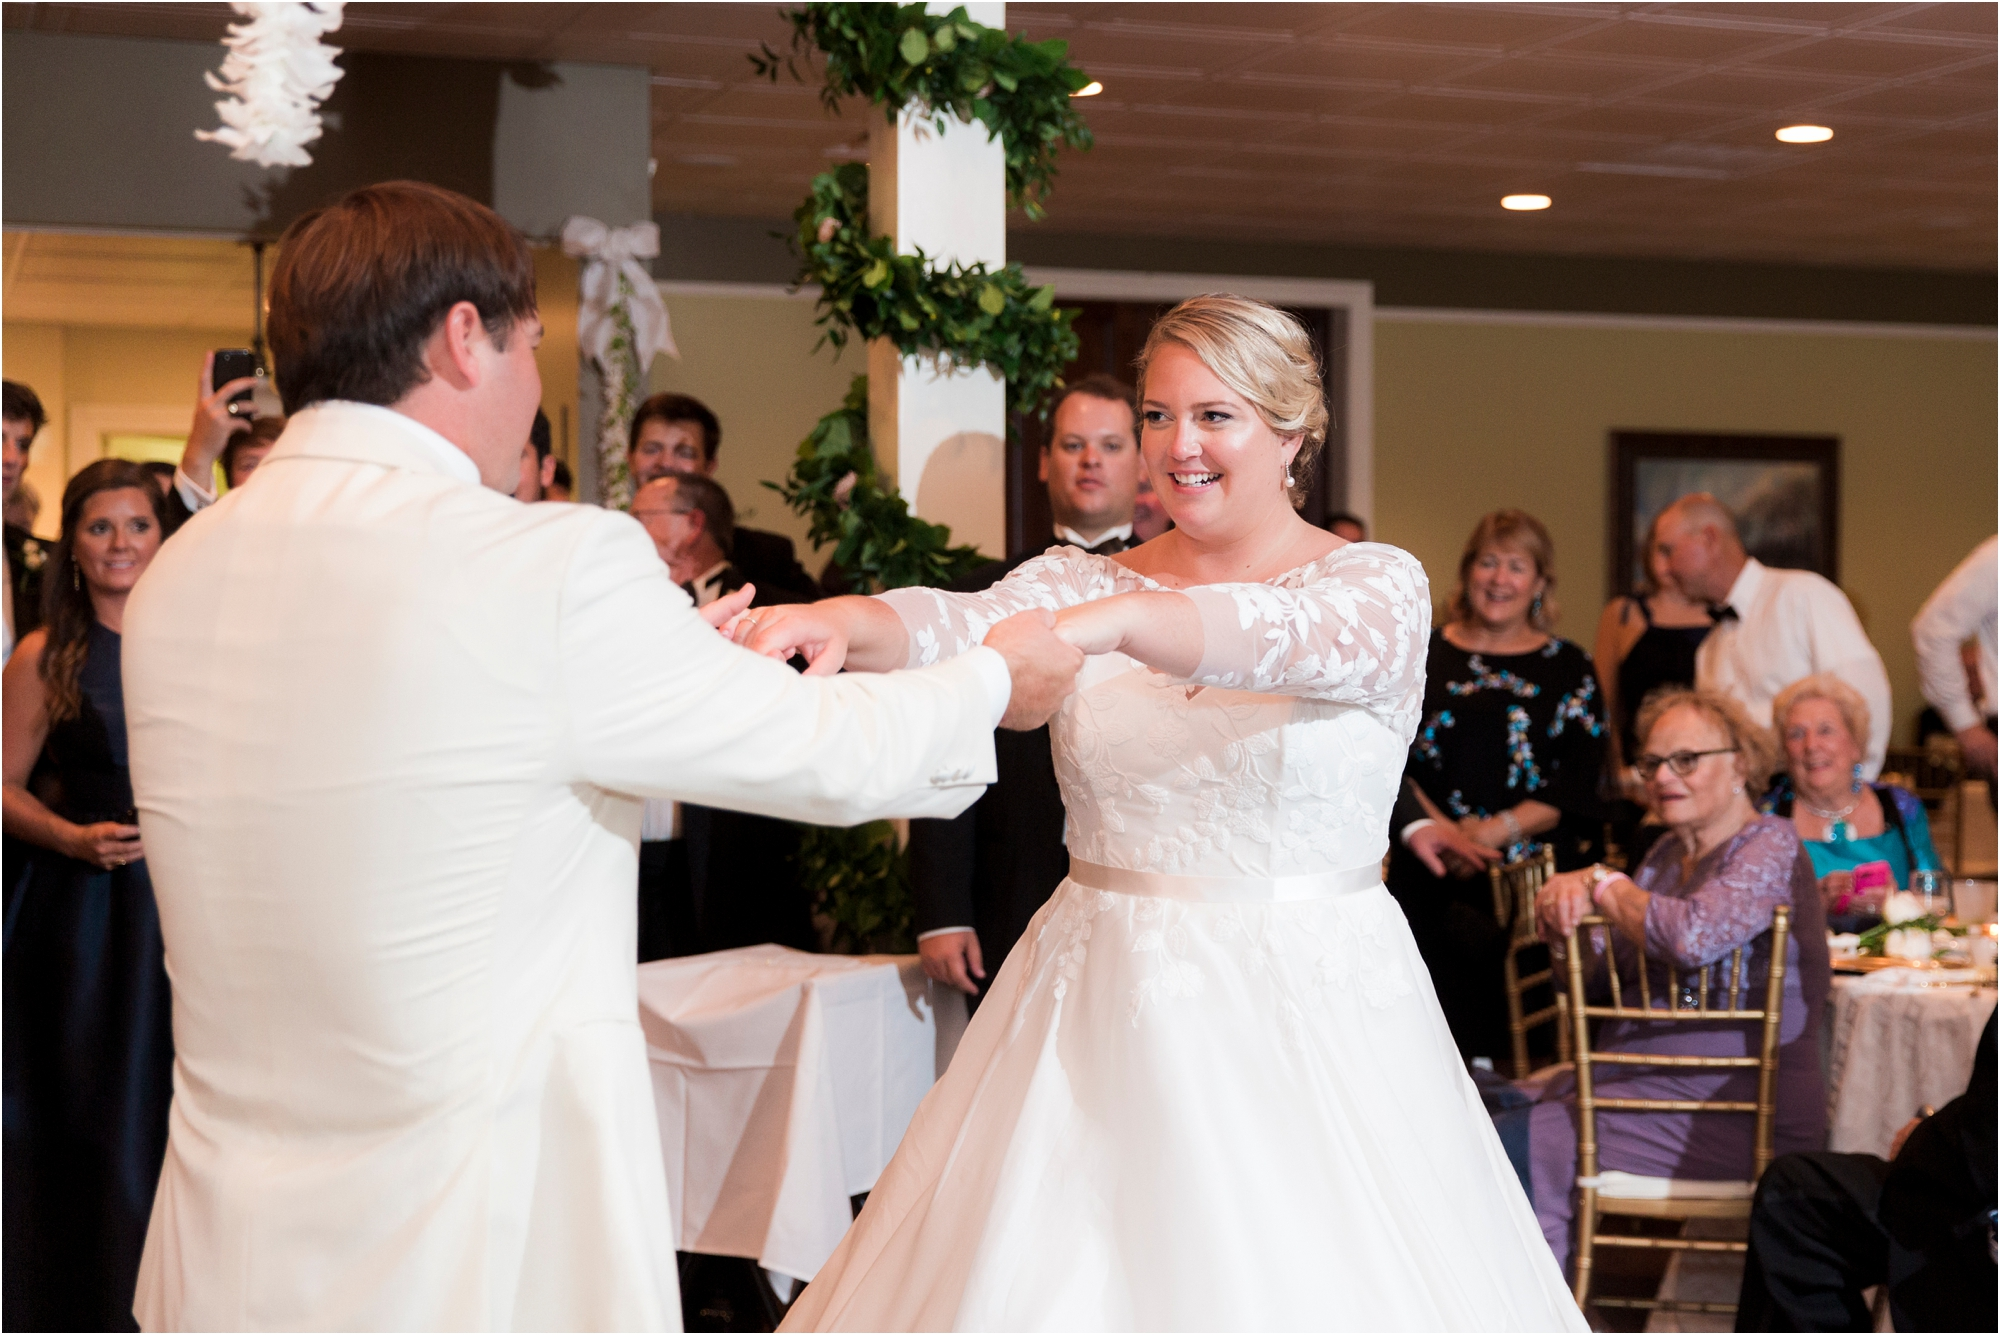 rachel-robert-chesapeake-inn-urbanna-virginia-wedding-photos_0025.jpg